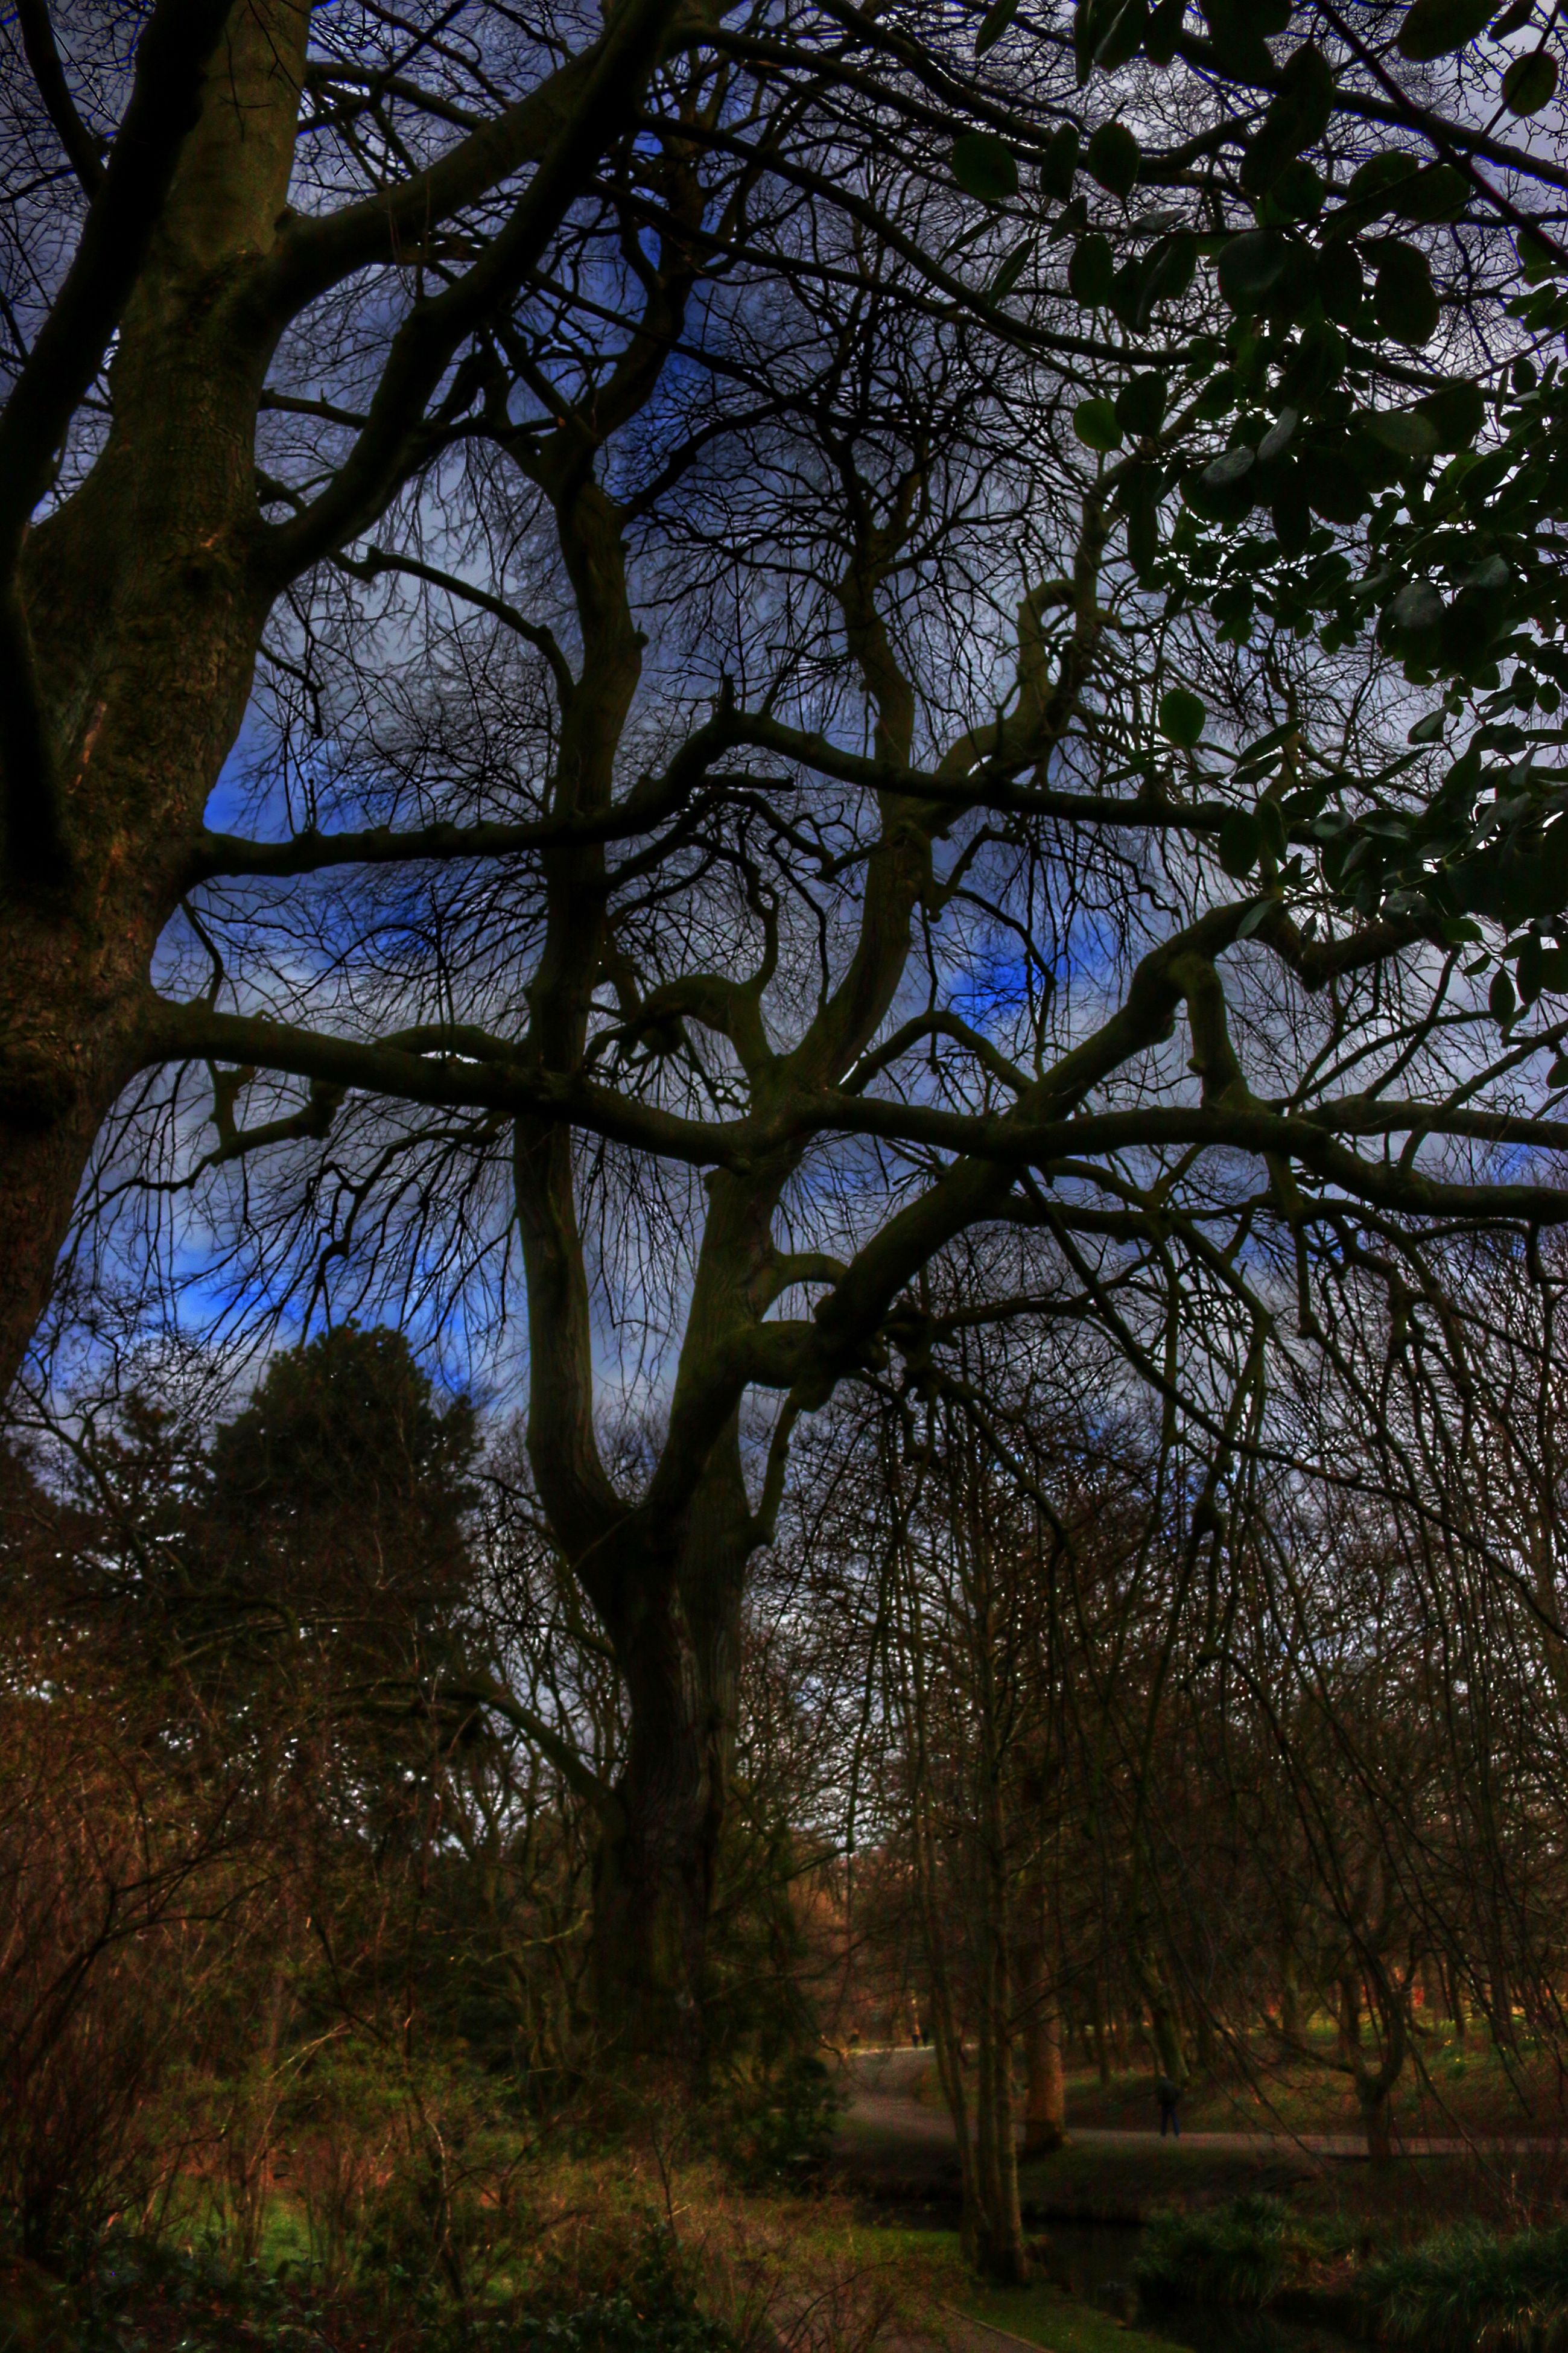 tree, branch, growth, low angle view, tranquility, nature, tree trunk, beauty in nature, tranquil scene, bare tree, sky, green color, scenics, day, outdoors, no people, forest, field, grass, park - man made space